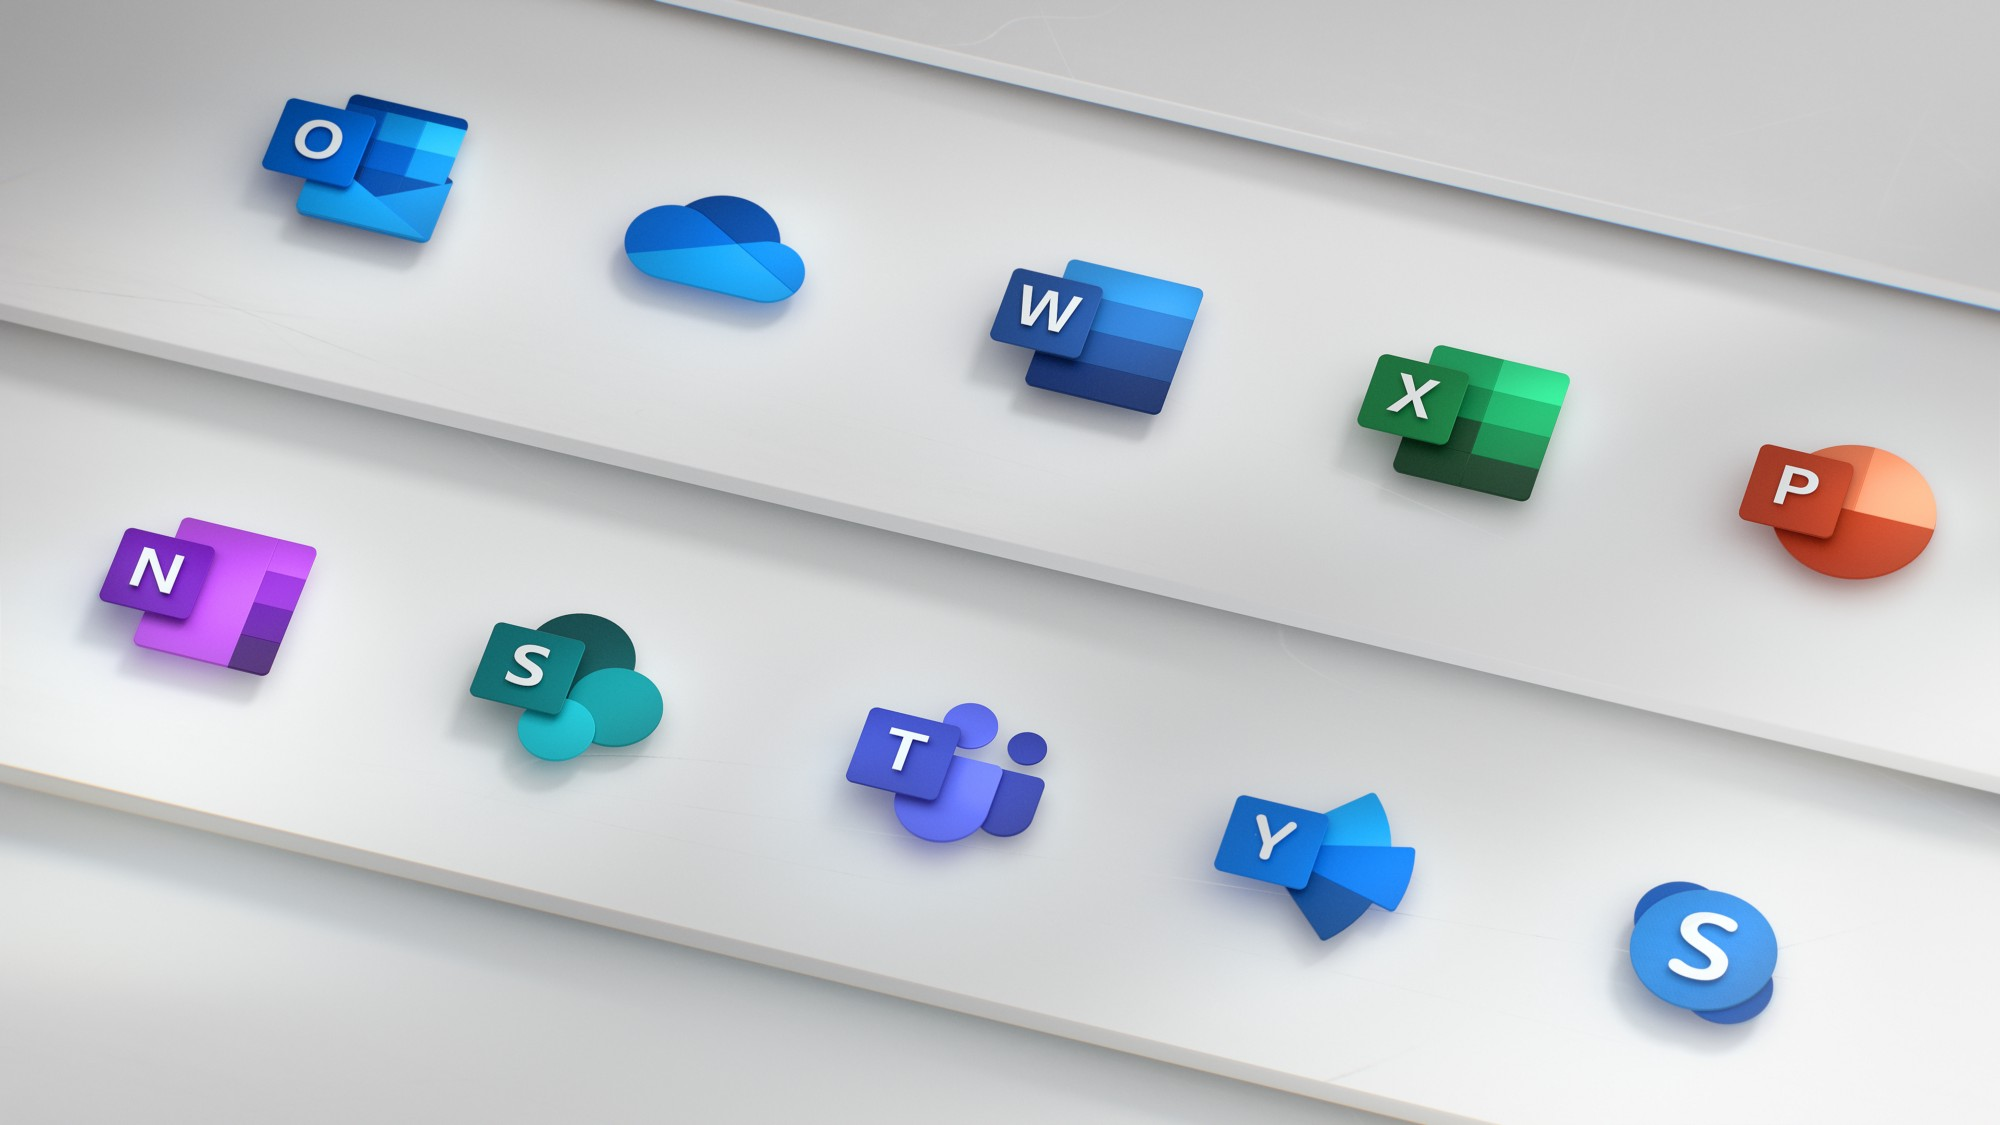 Microsoft is planning a complete visual overhaul of its Windows 10 icons